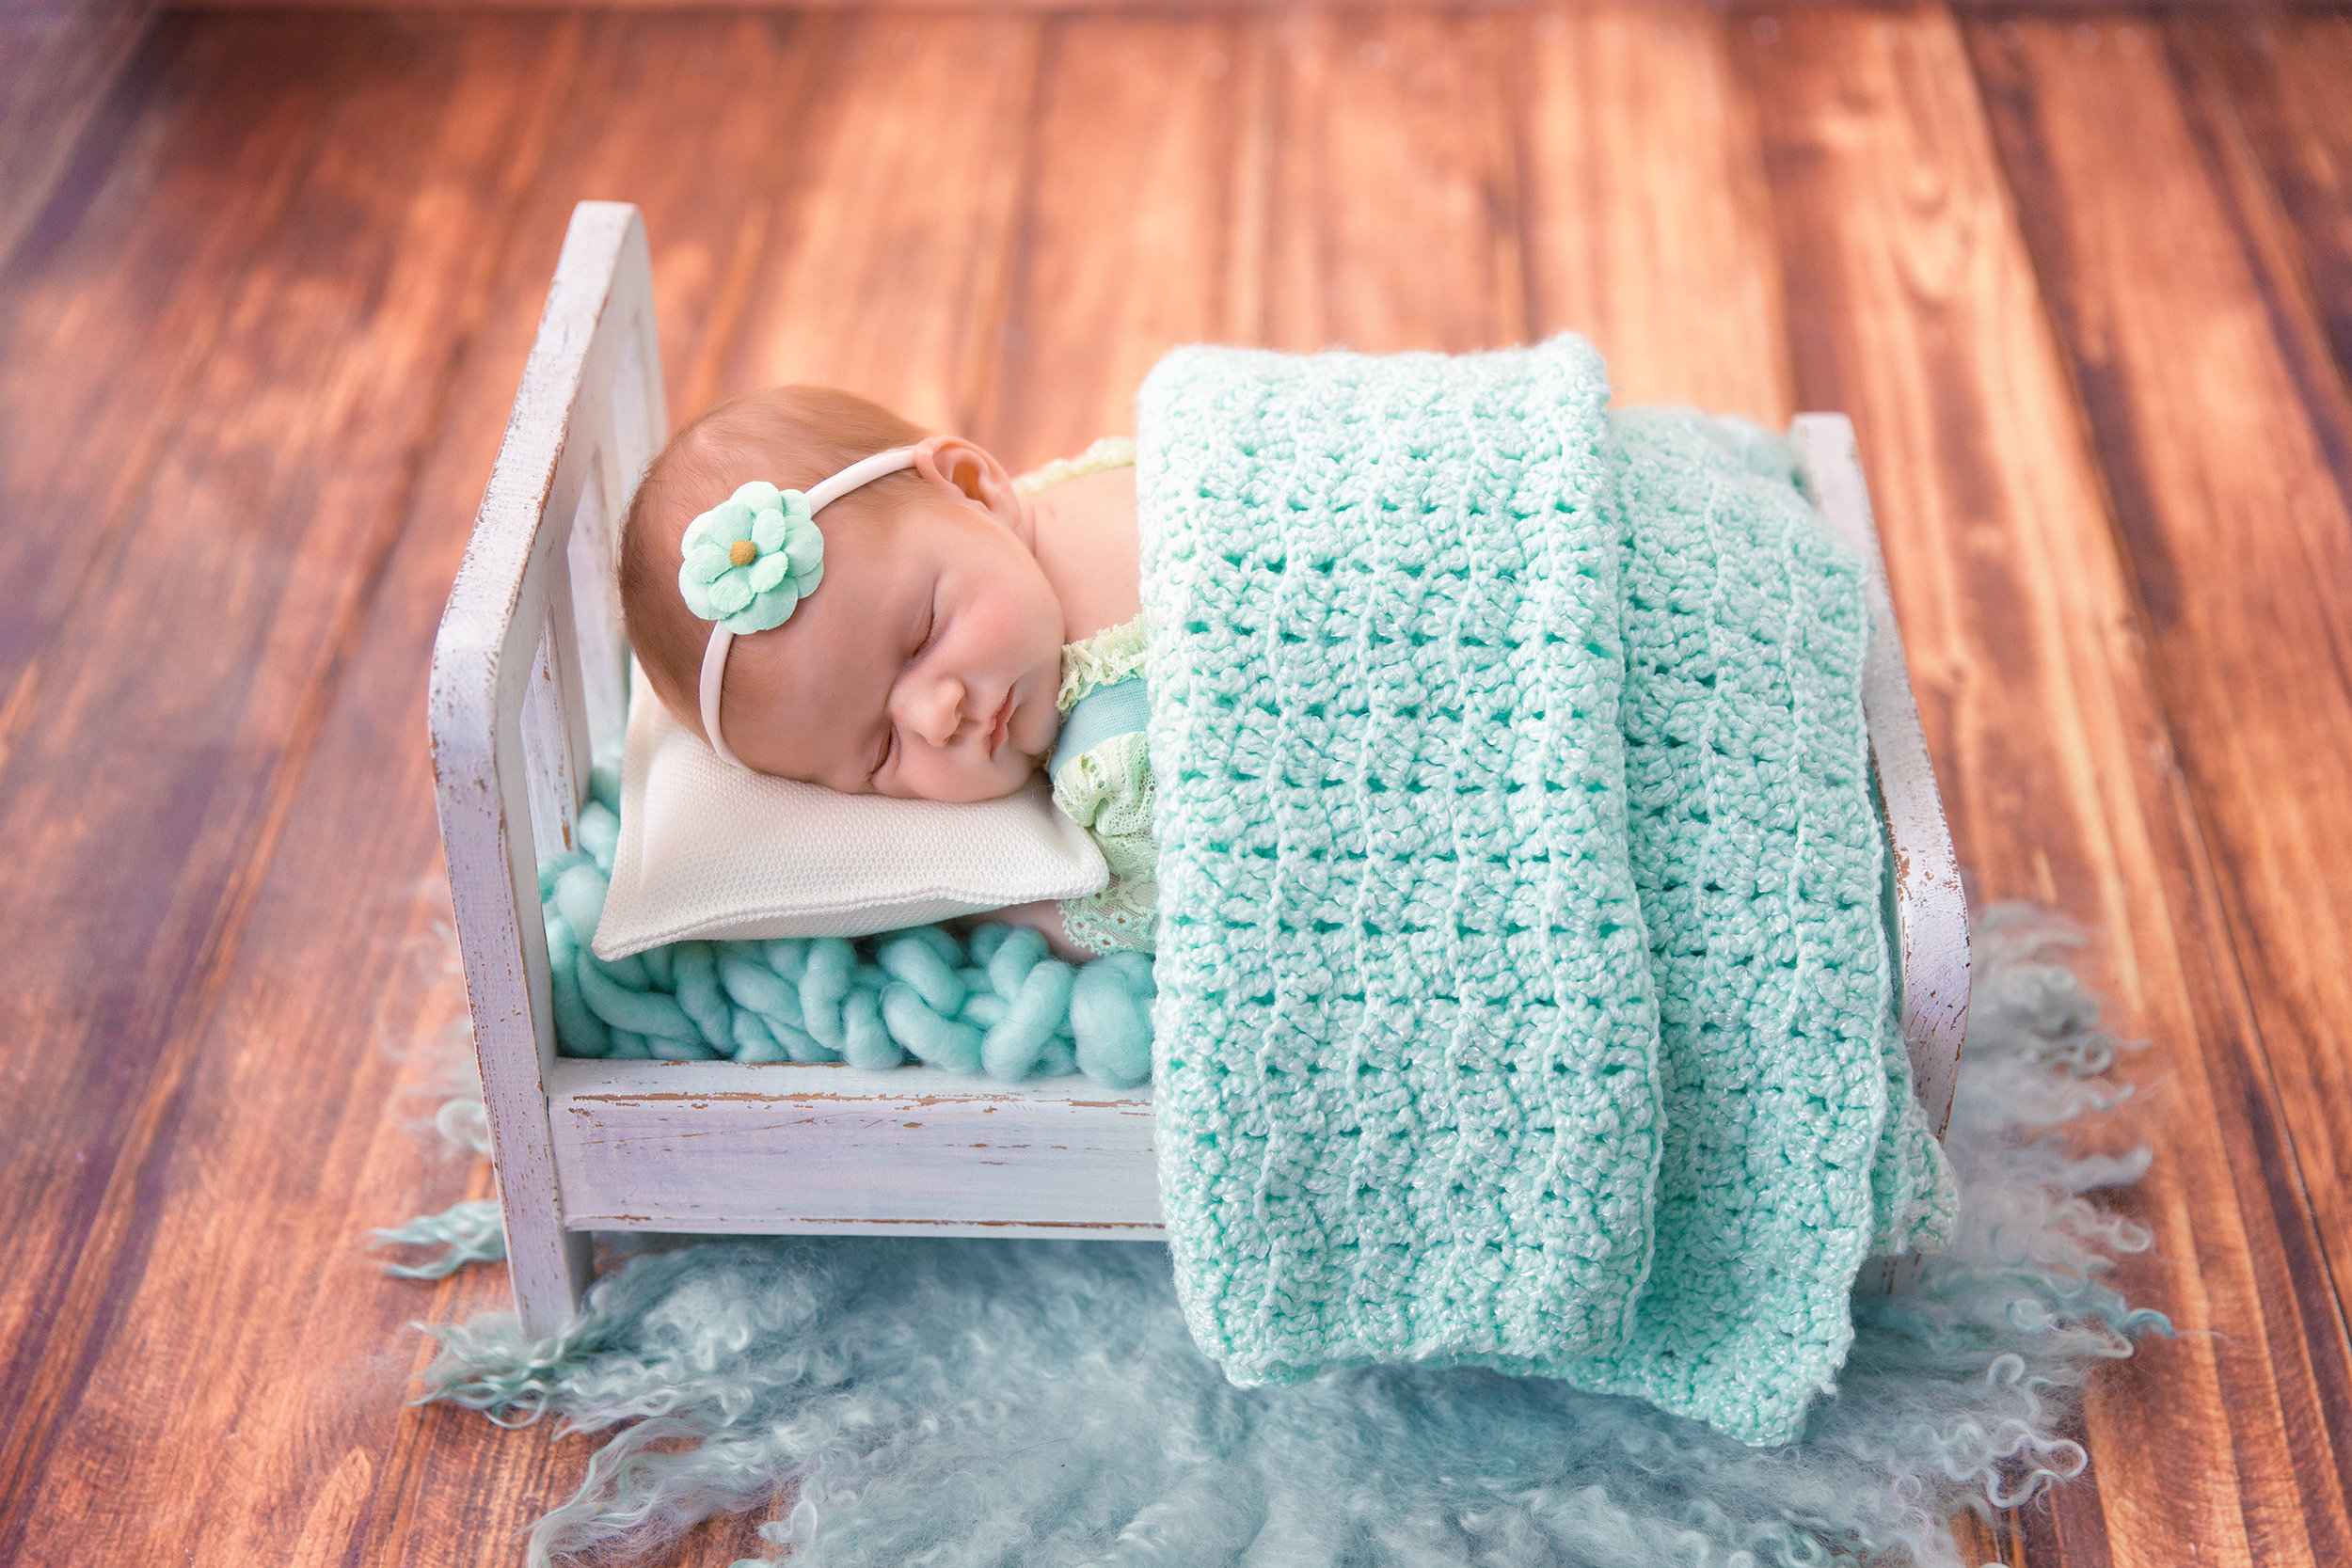 Sleeping beauty. Newborn Photoshoot. Newborn baby girl is sleeping soundly on a little barn bed wearing mint colour outfit. Calgary Newborn photographer - Milashka Photography